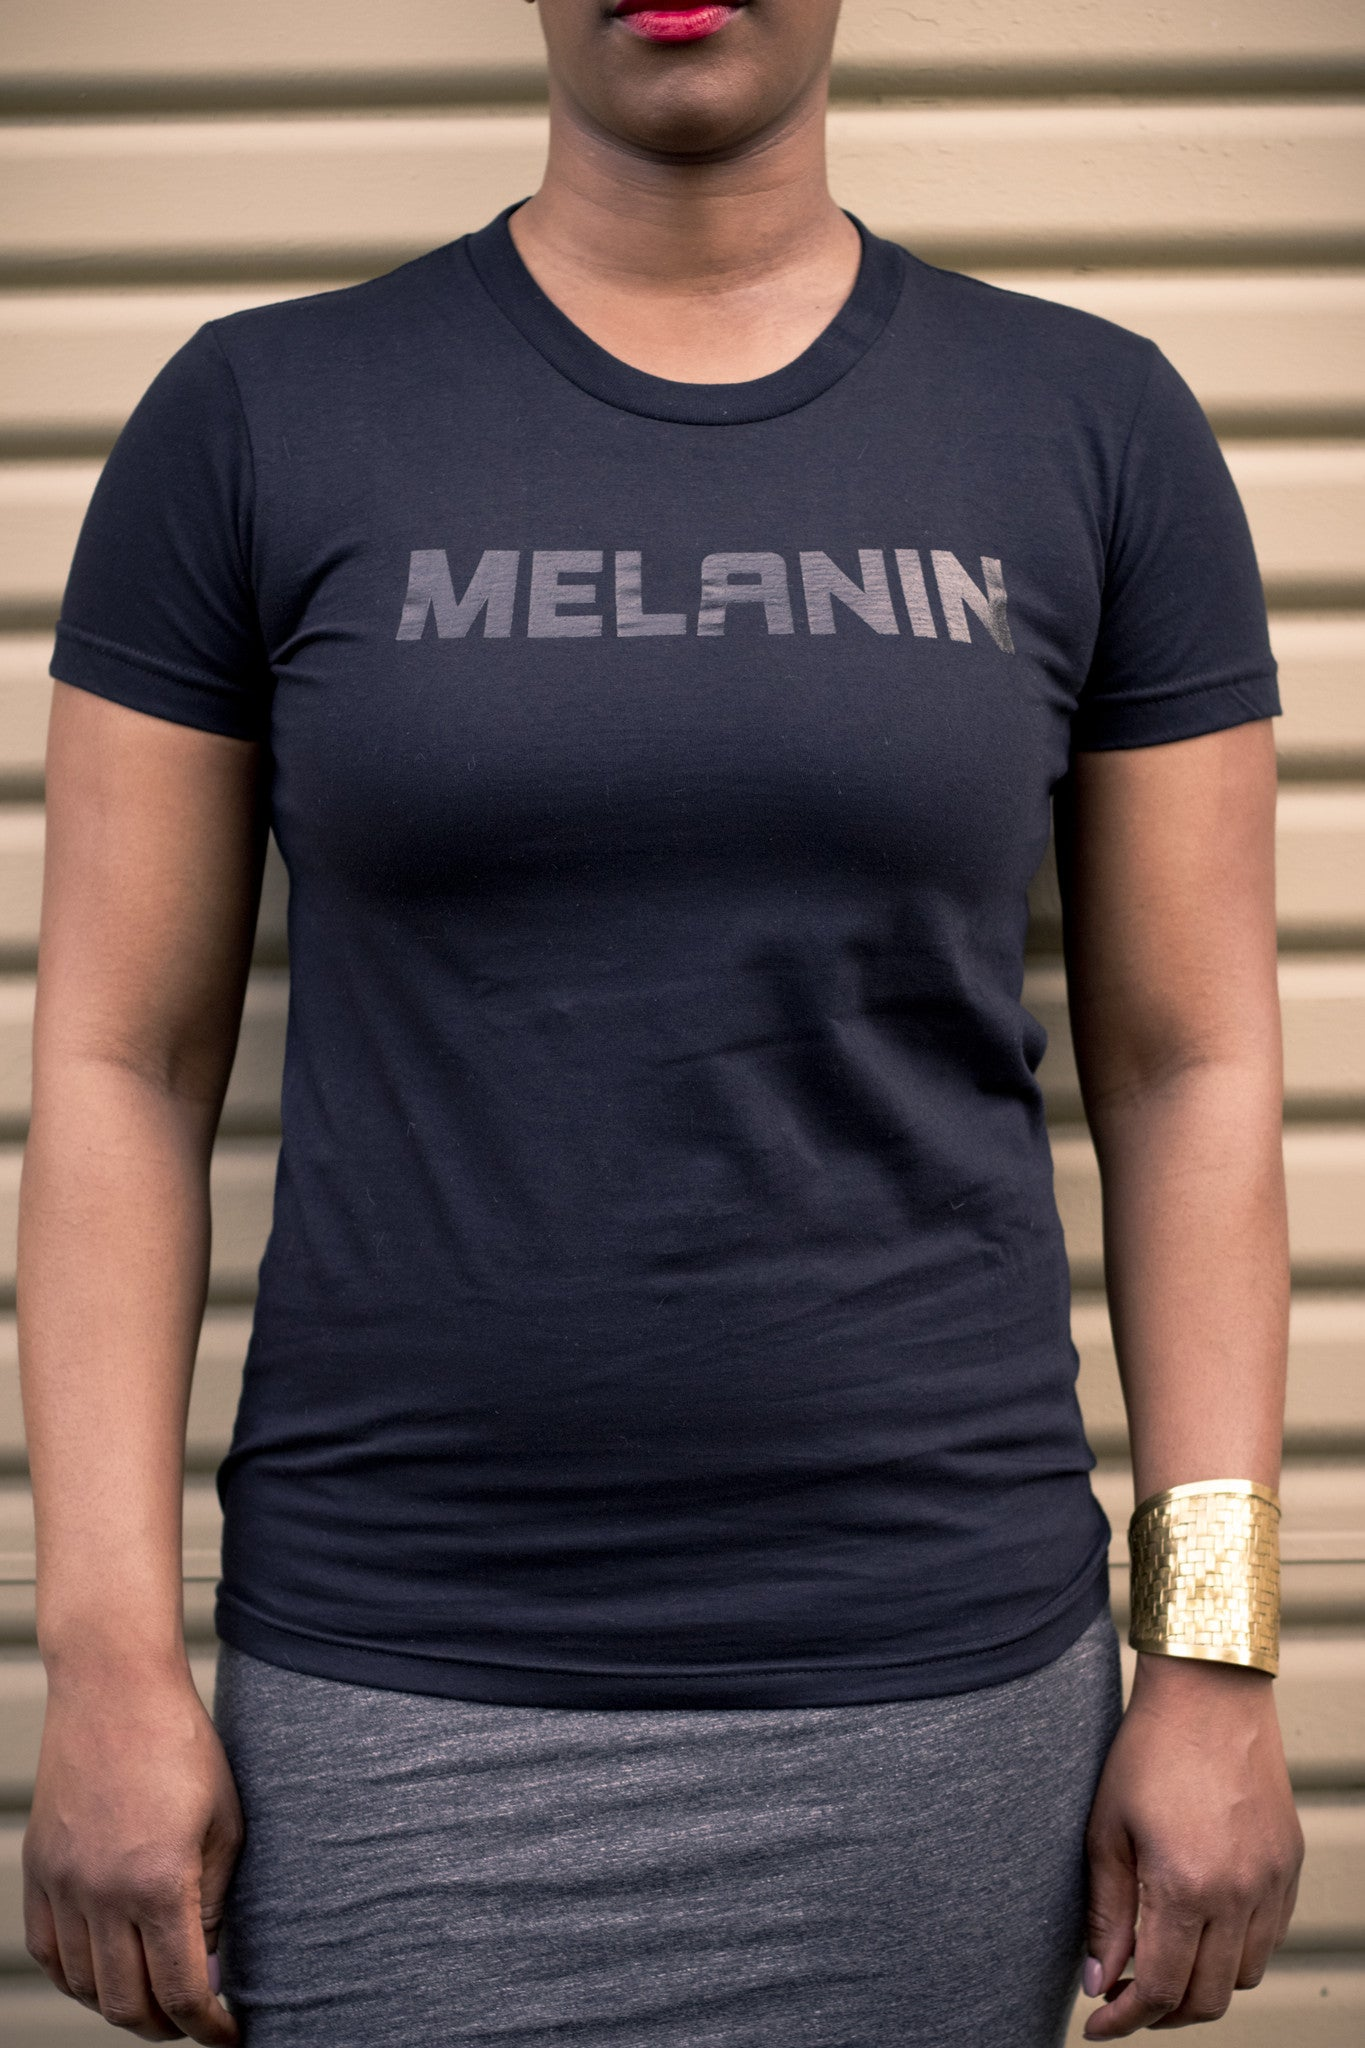 Women's MELANIN T-Shirt Black